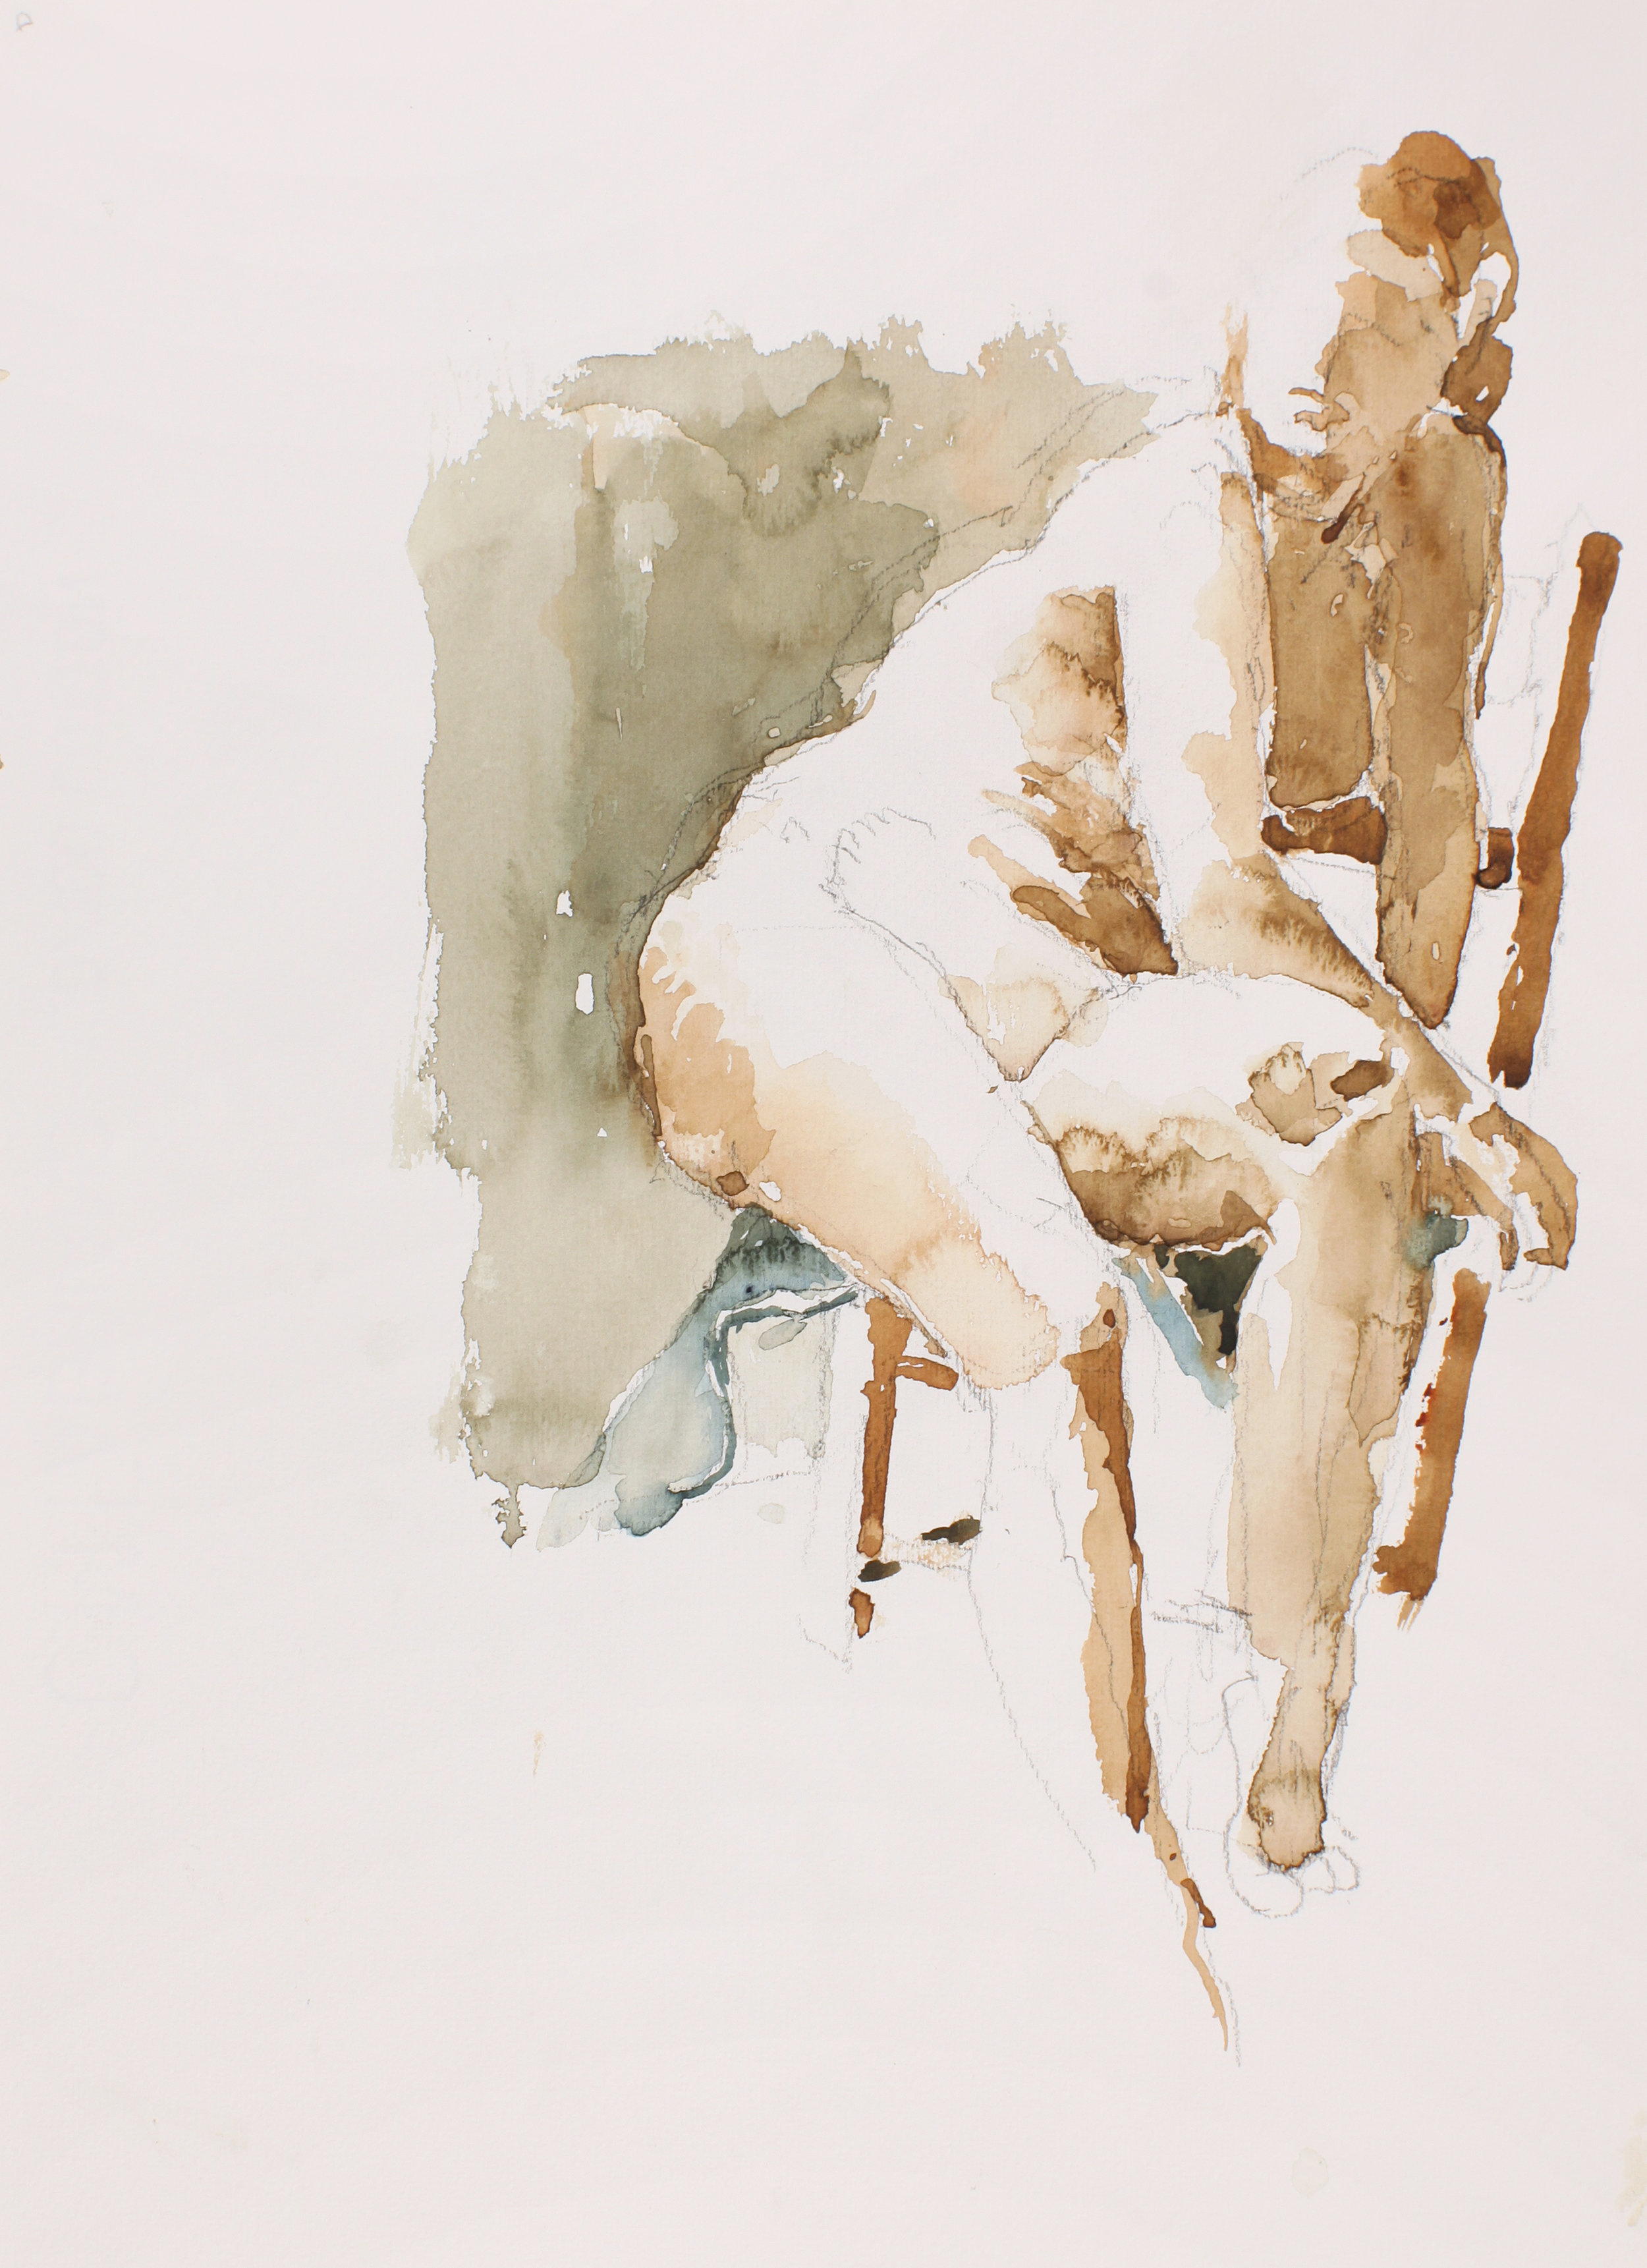 2006_Nude_Seated_Sideways_on_Chair_watercolour_and_pencil_on_paper_15x11in_WPF481.jpg